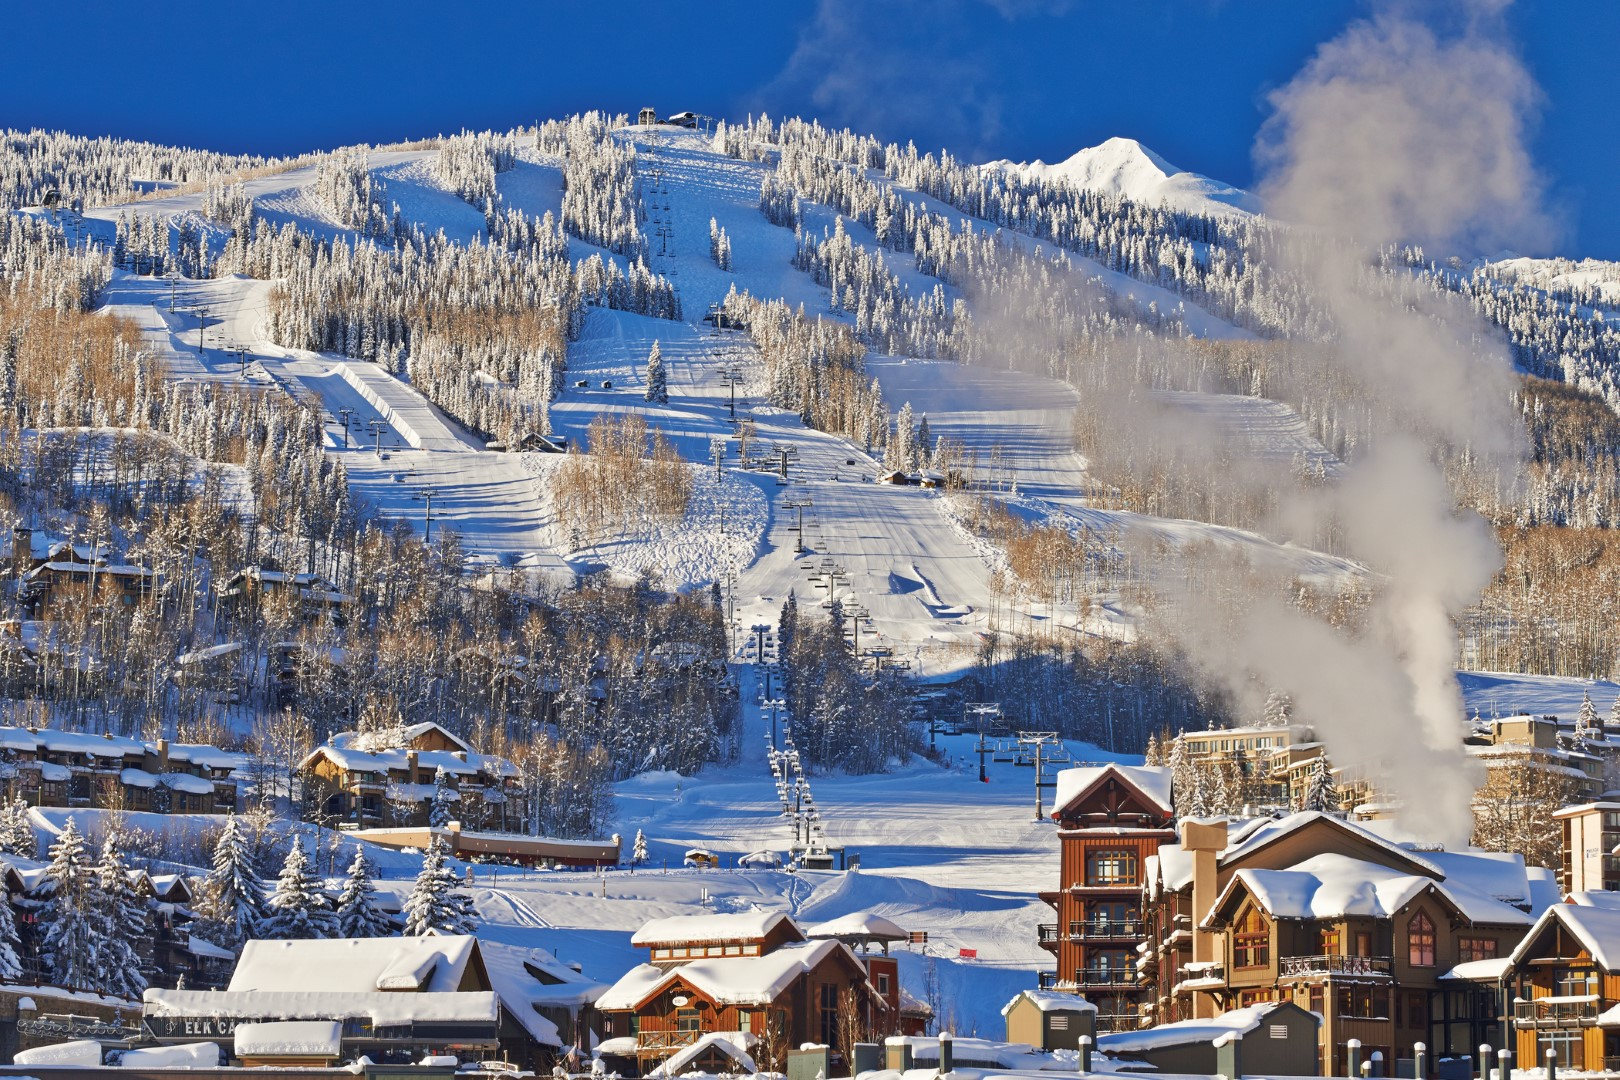 Aspen Snowmass ski area and village in Colorado, USA